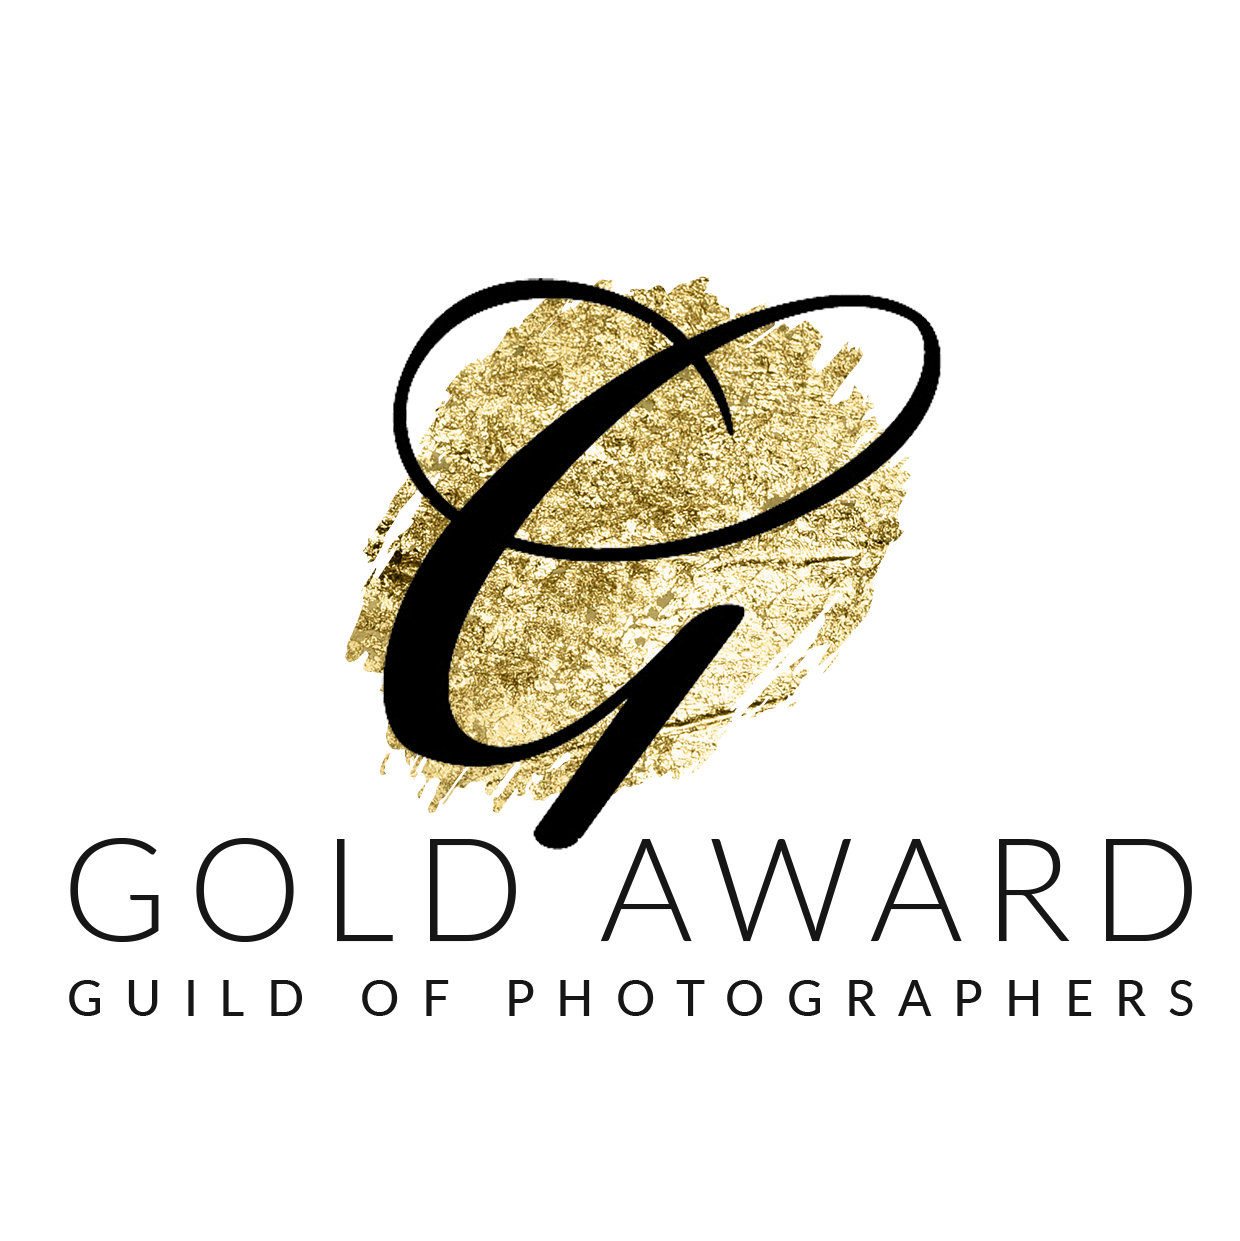 Tunbridge Wells wedding photographer with Gold award from The Guild of professional photographers